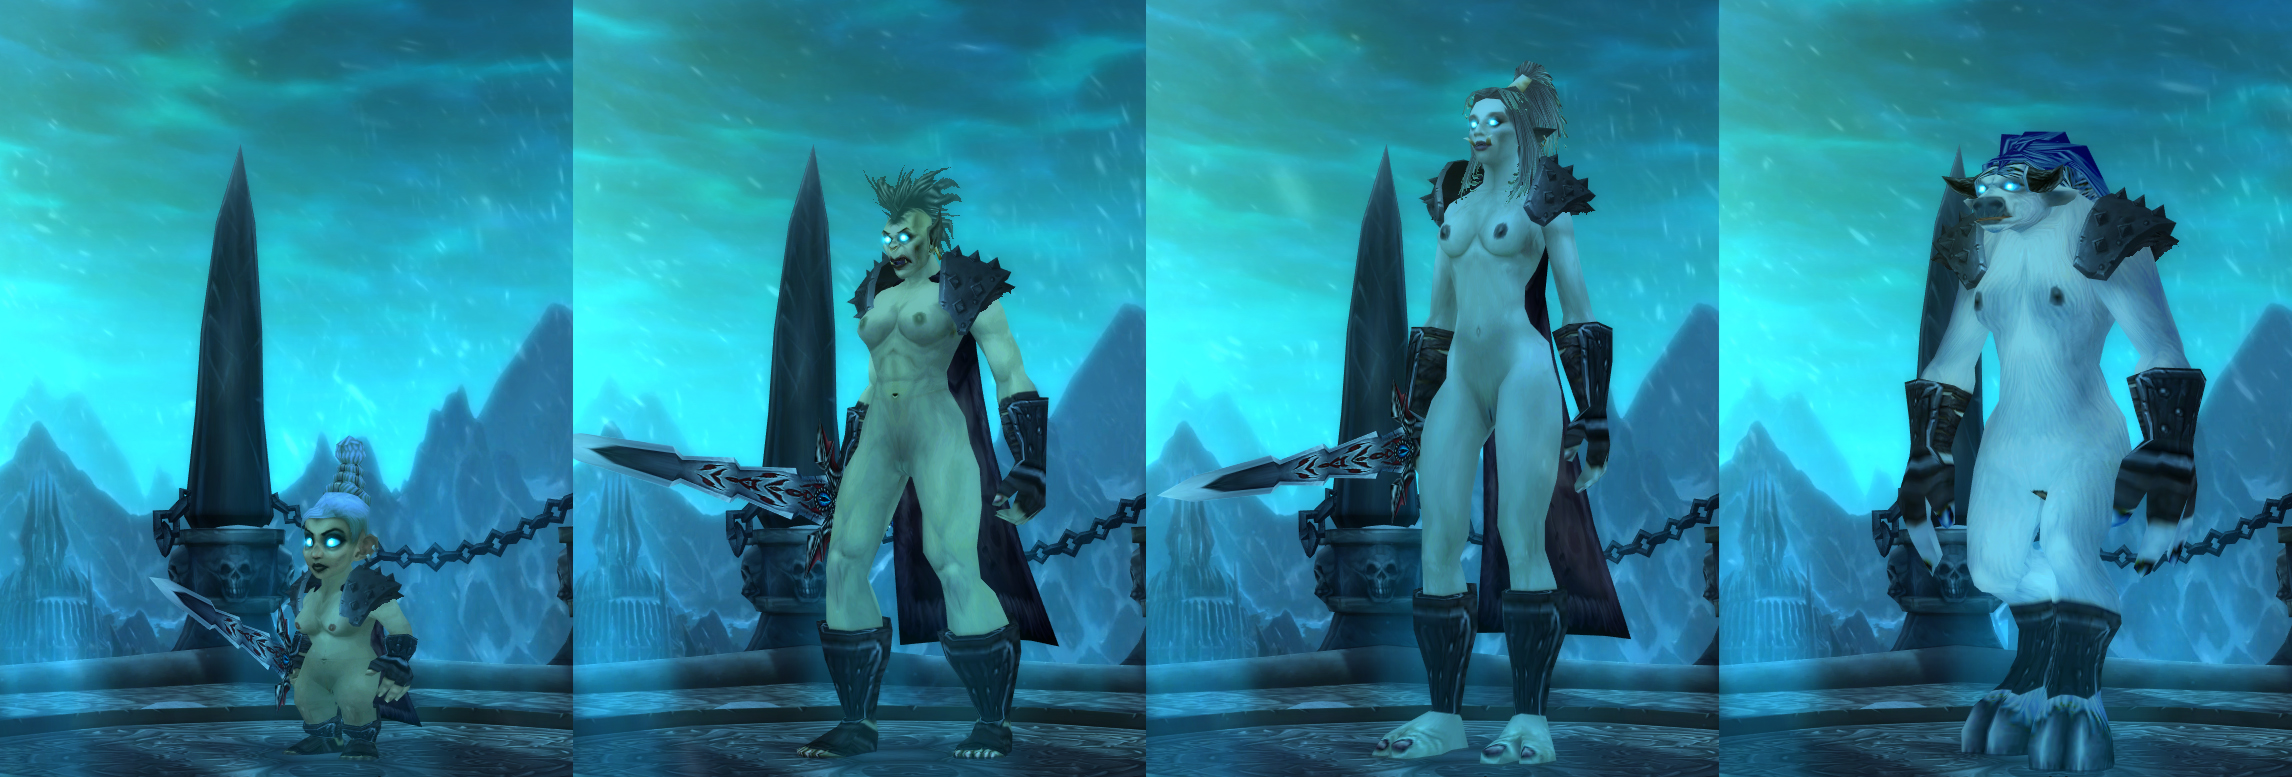 World of warcraft nud mods hentai toons